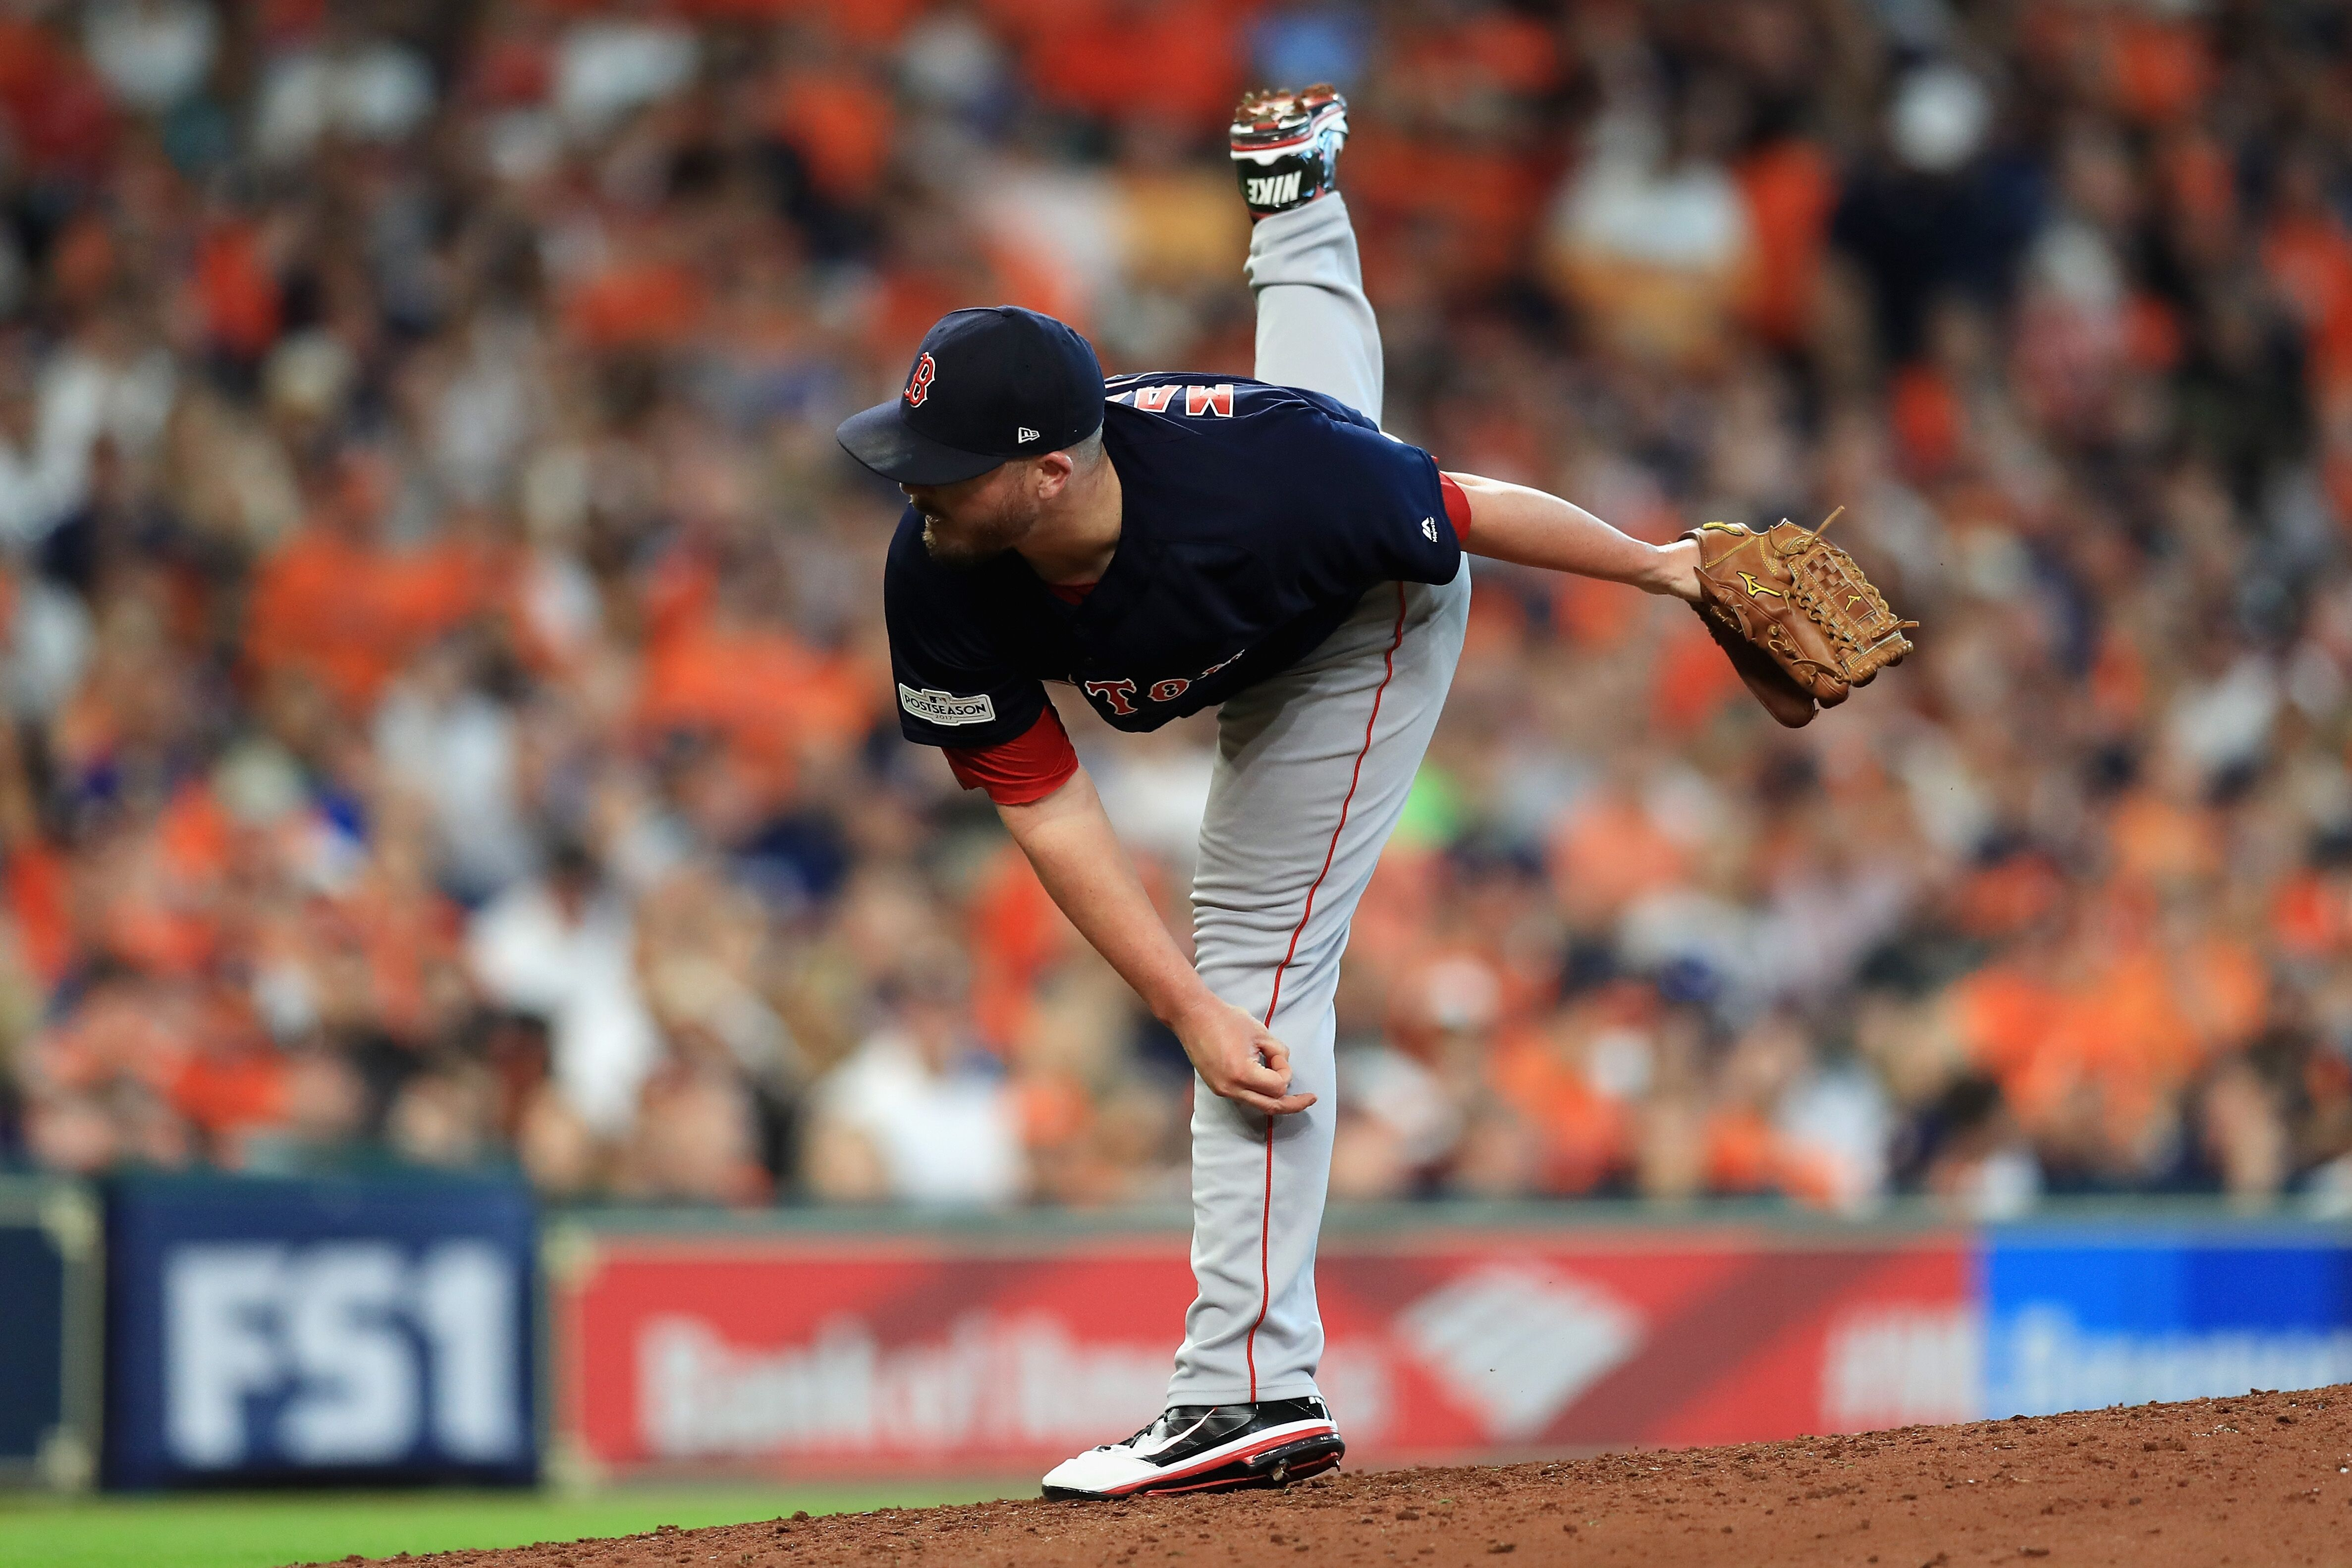 858453486-divisional-round-boston-red-sox-v-houston-astros-game-two.jpg